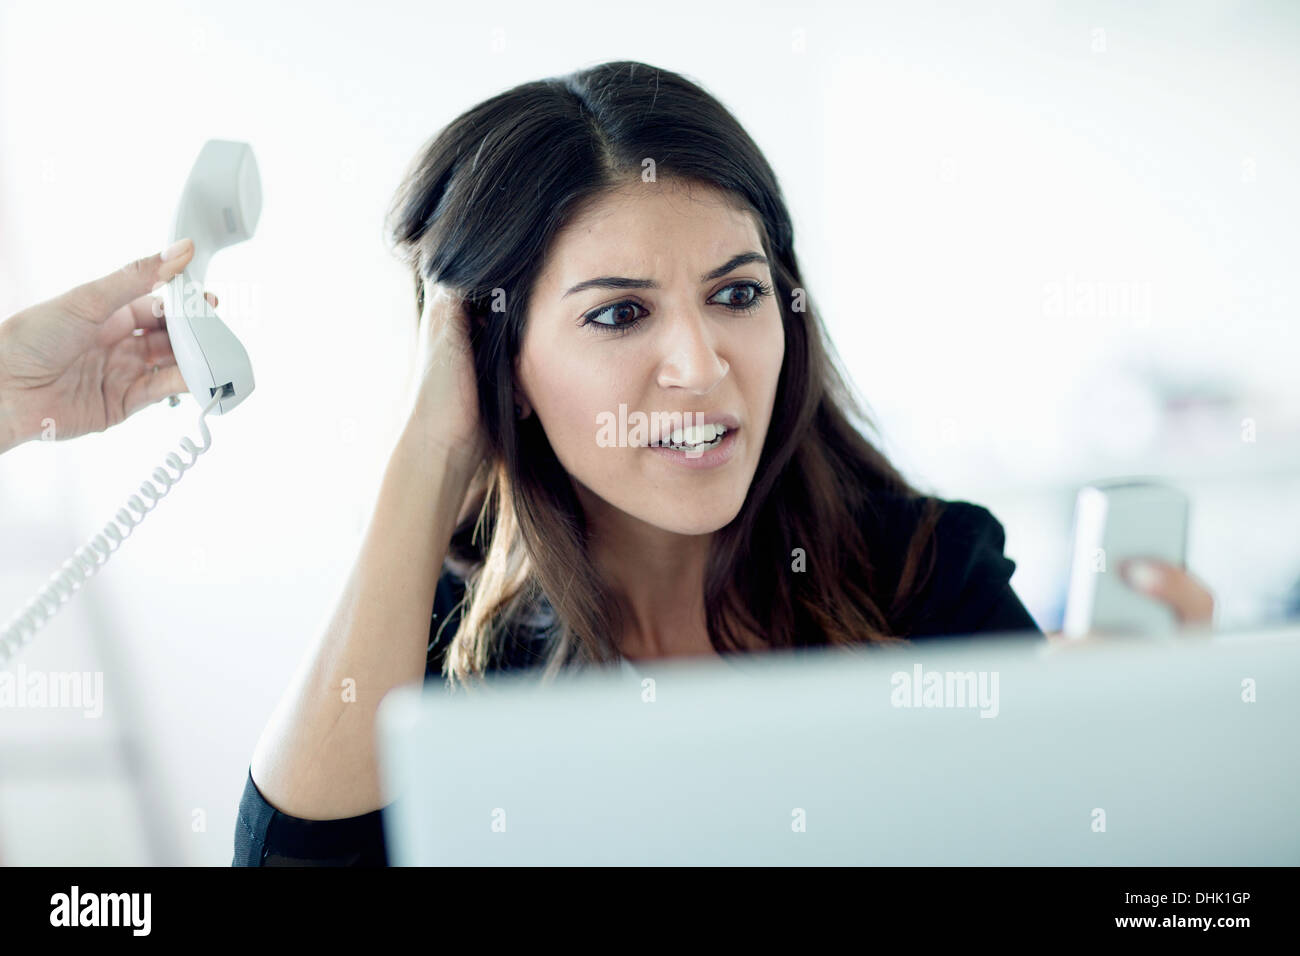 Overworked young businesswoman answering phones - Stock Image